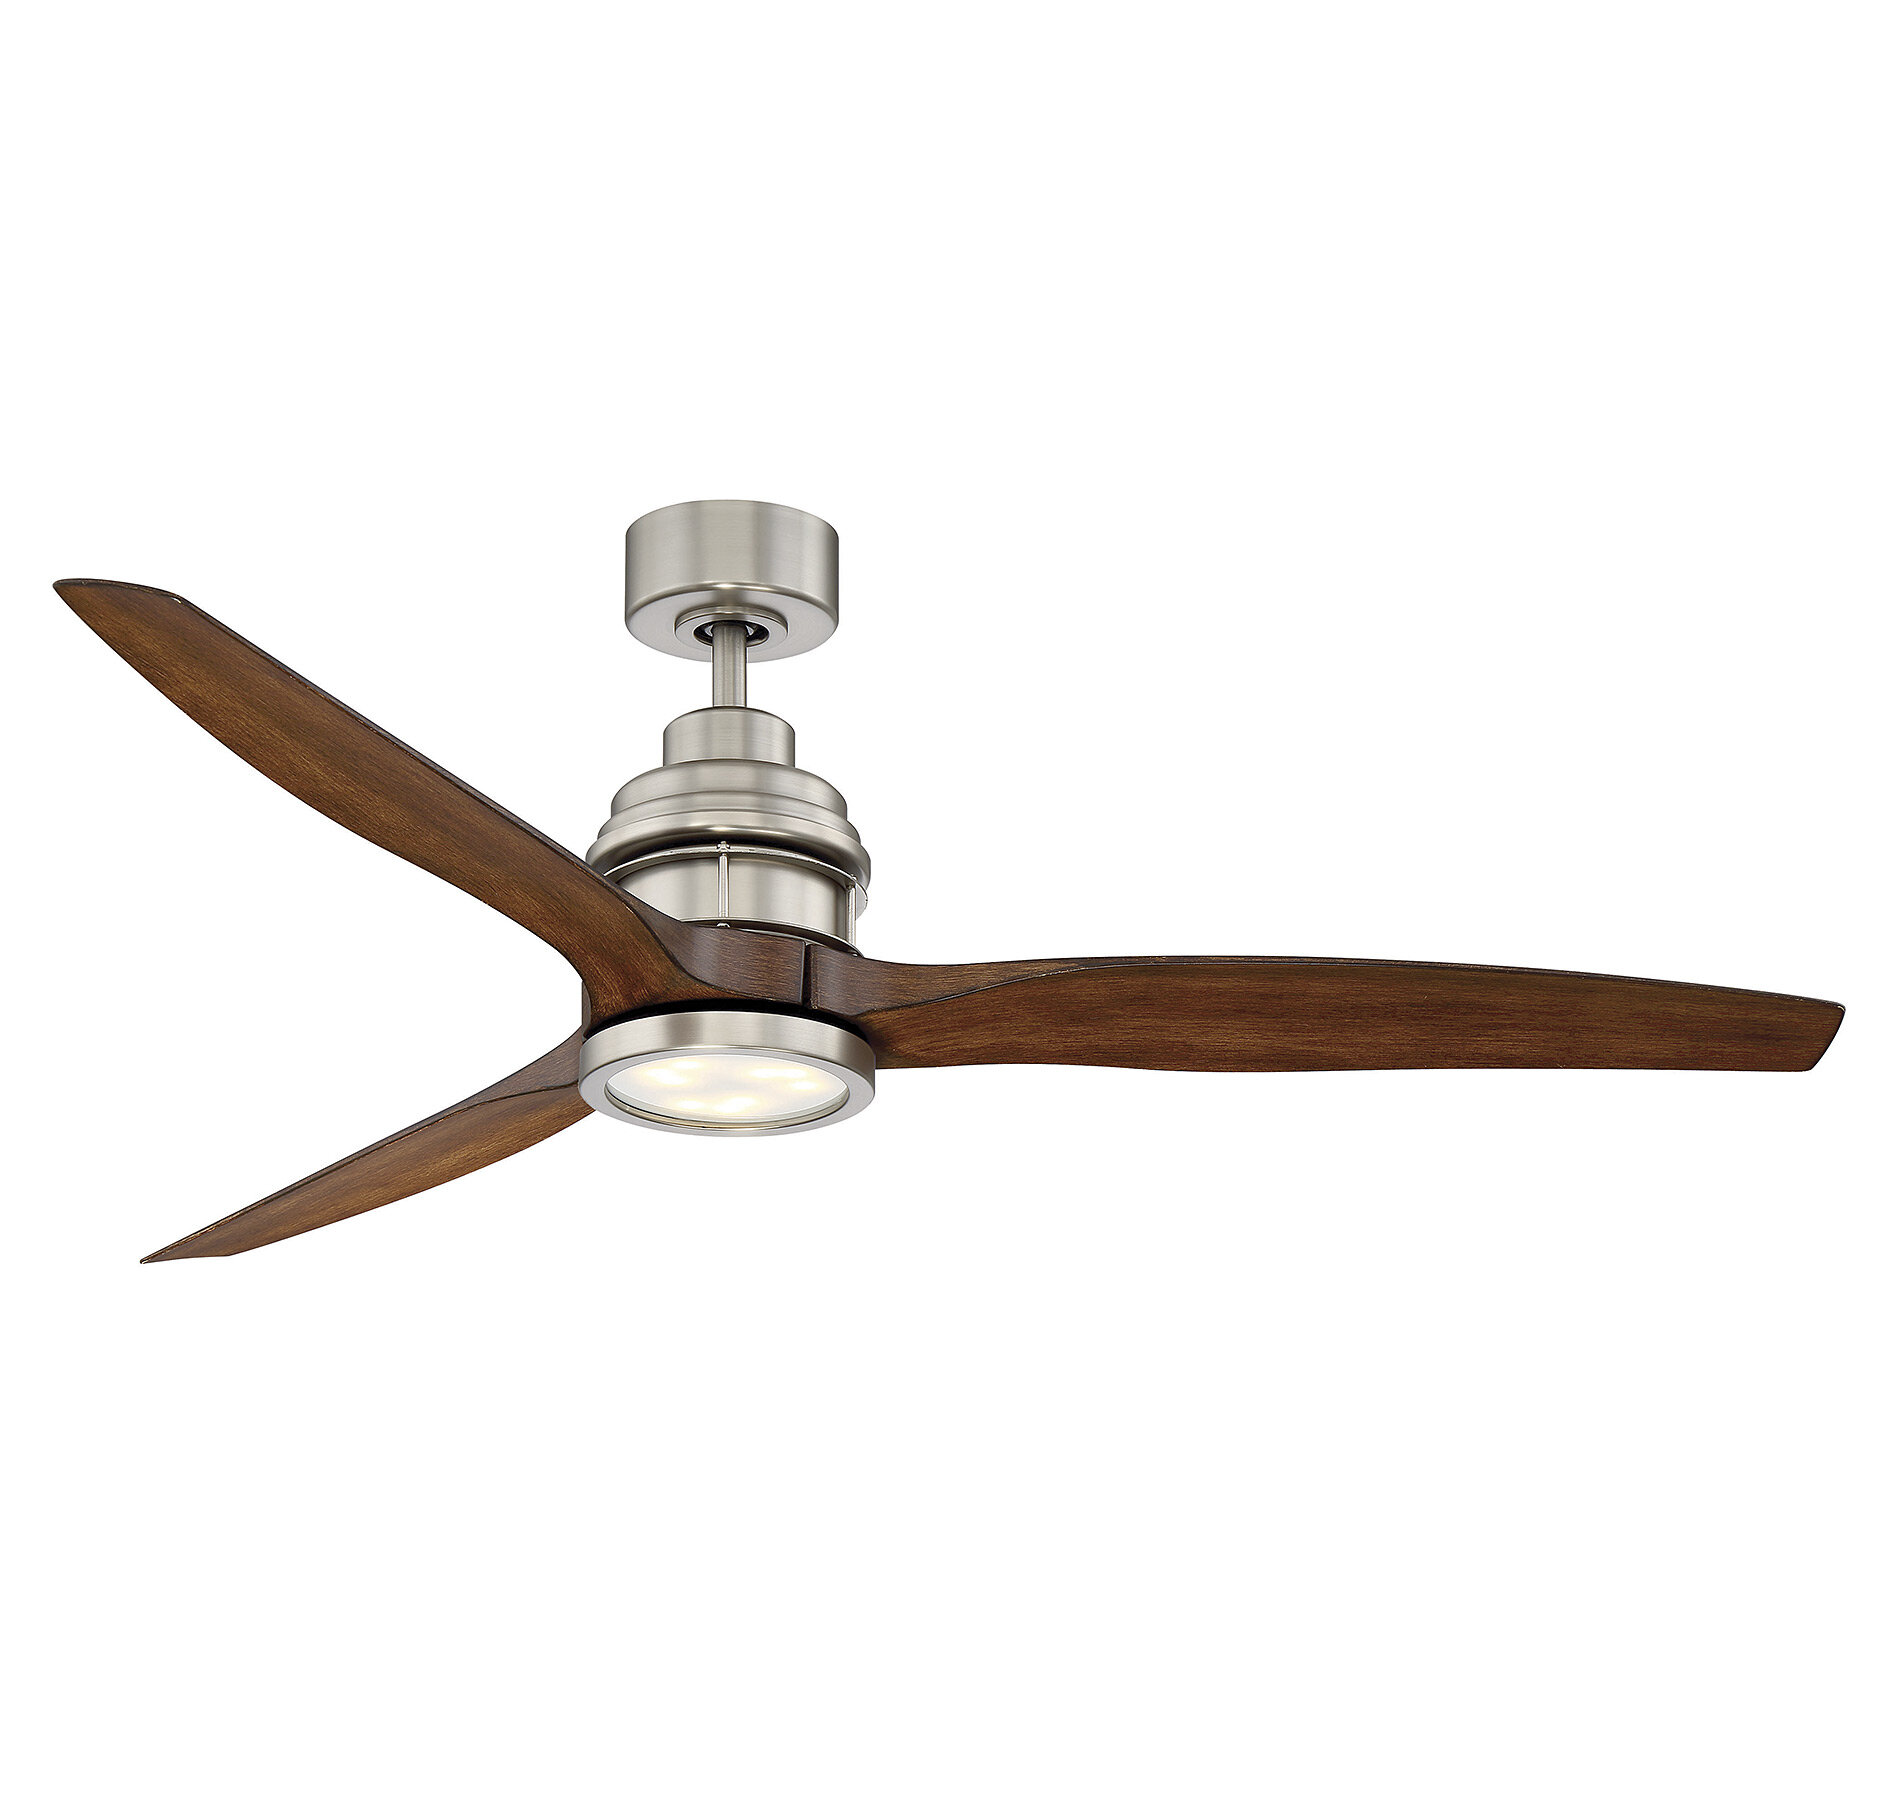 60 Harmoneyq 3 Blade Ceiling Fan With Remote Control Reviews Joss Main